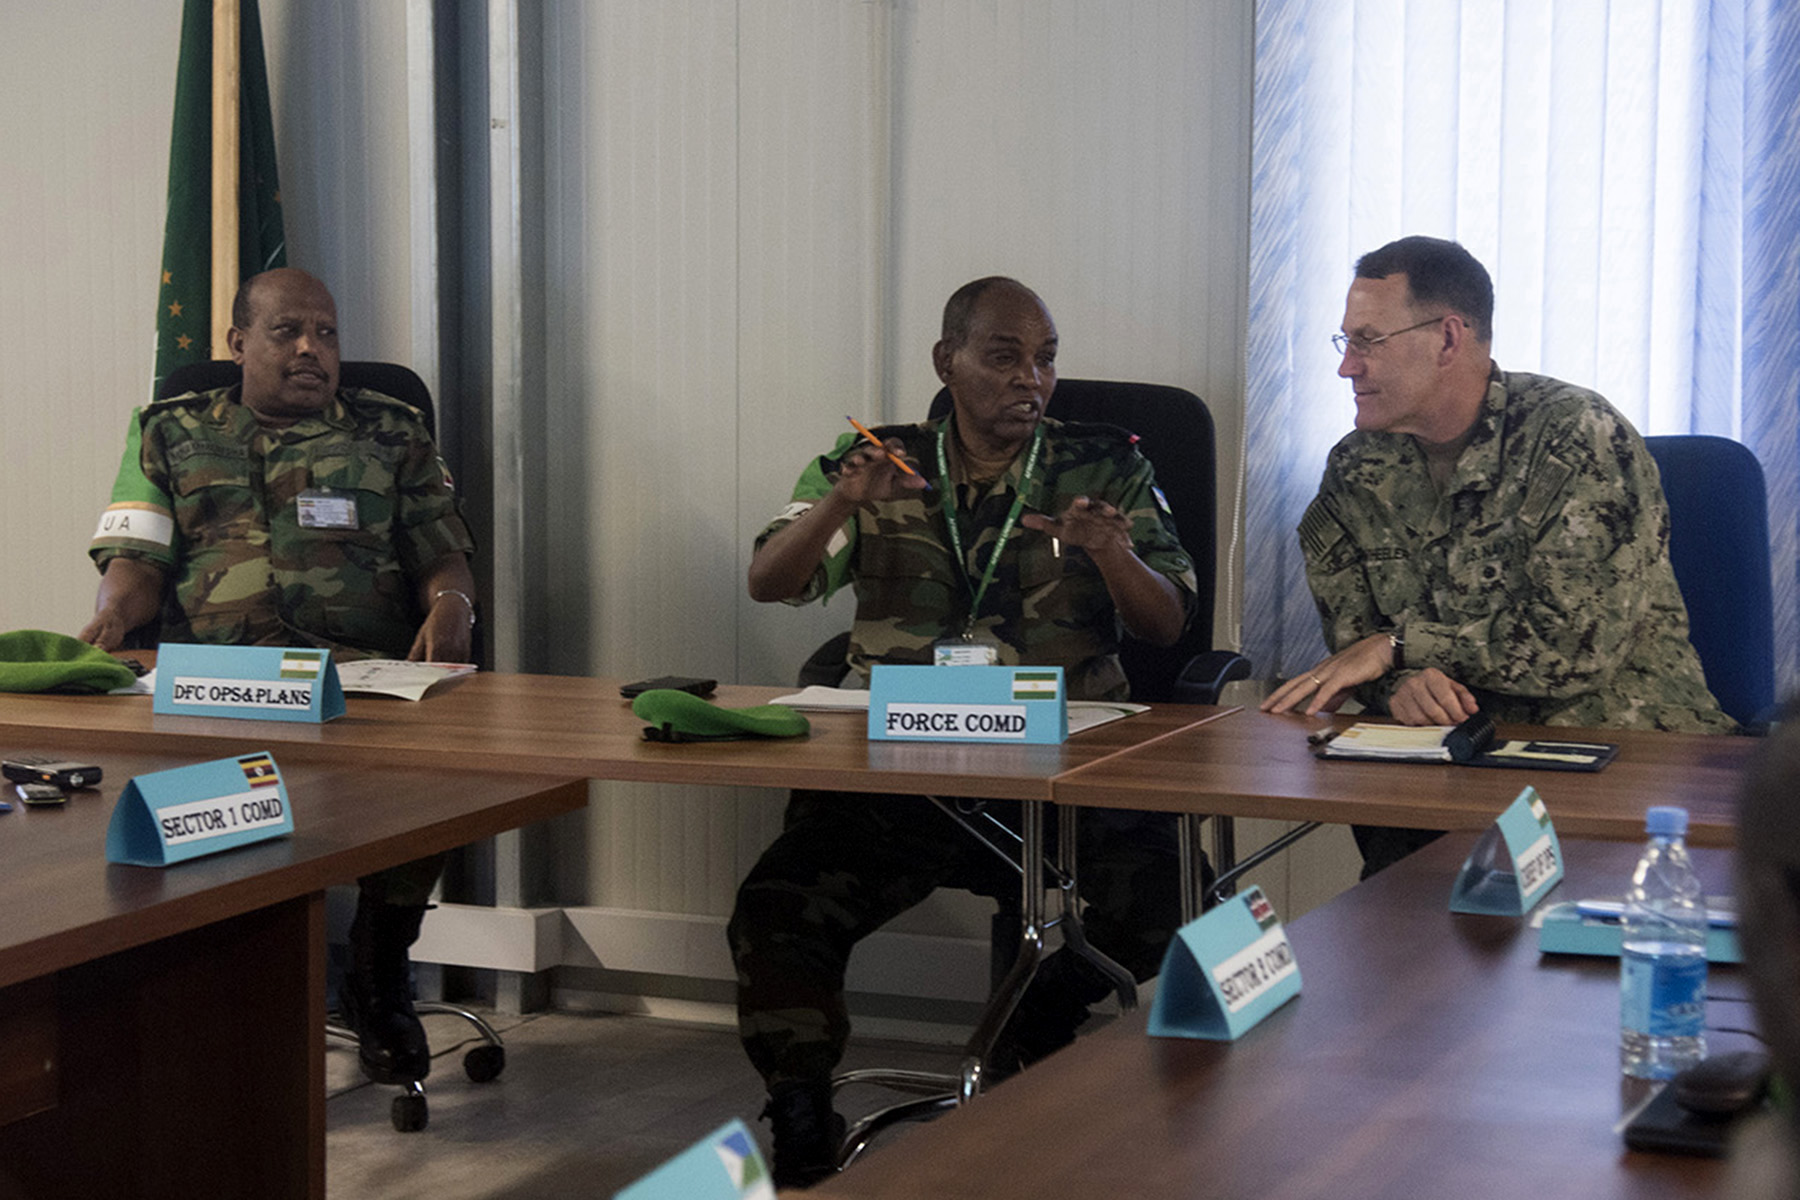 MOGADISHU, Somalia- U.S. Navy Rear Adm. William Wheeler (right), Combined Joint Task Force-Horn of Africa deputy commander, speaks with African Union Mission in Somalia Force Commander Lt. Gen. Osman Noor Soubagleh (middle) and Maj. Gen. Mohammed Ishu, AMISOM deputy commander for operations (left).  The leaders attended an AMISOM/Somali National Army Sector Commanders' conference, Aug. 25, 2016, at the AMISOM Force Headquarters in Mogadishu, Somalia. The conference brings together senior military leaders from each sector to review efficiency and needed improvements for security operations and SNA collaboration strategies. (U.S. Air Force photo by Staff Sgt. Tiffany DeNault)